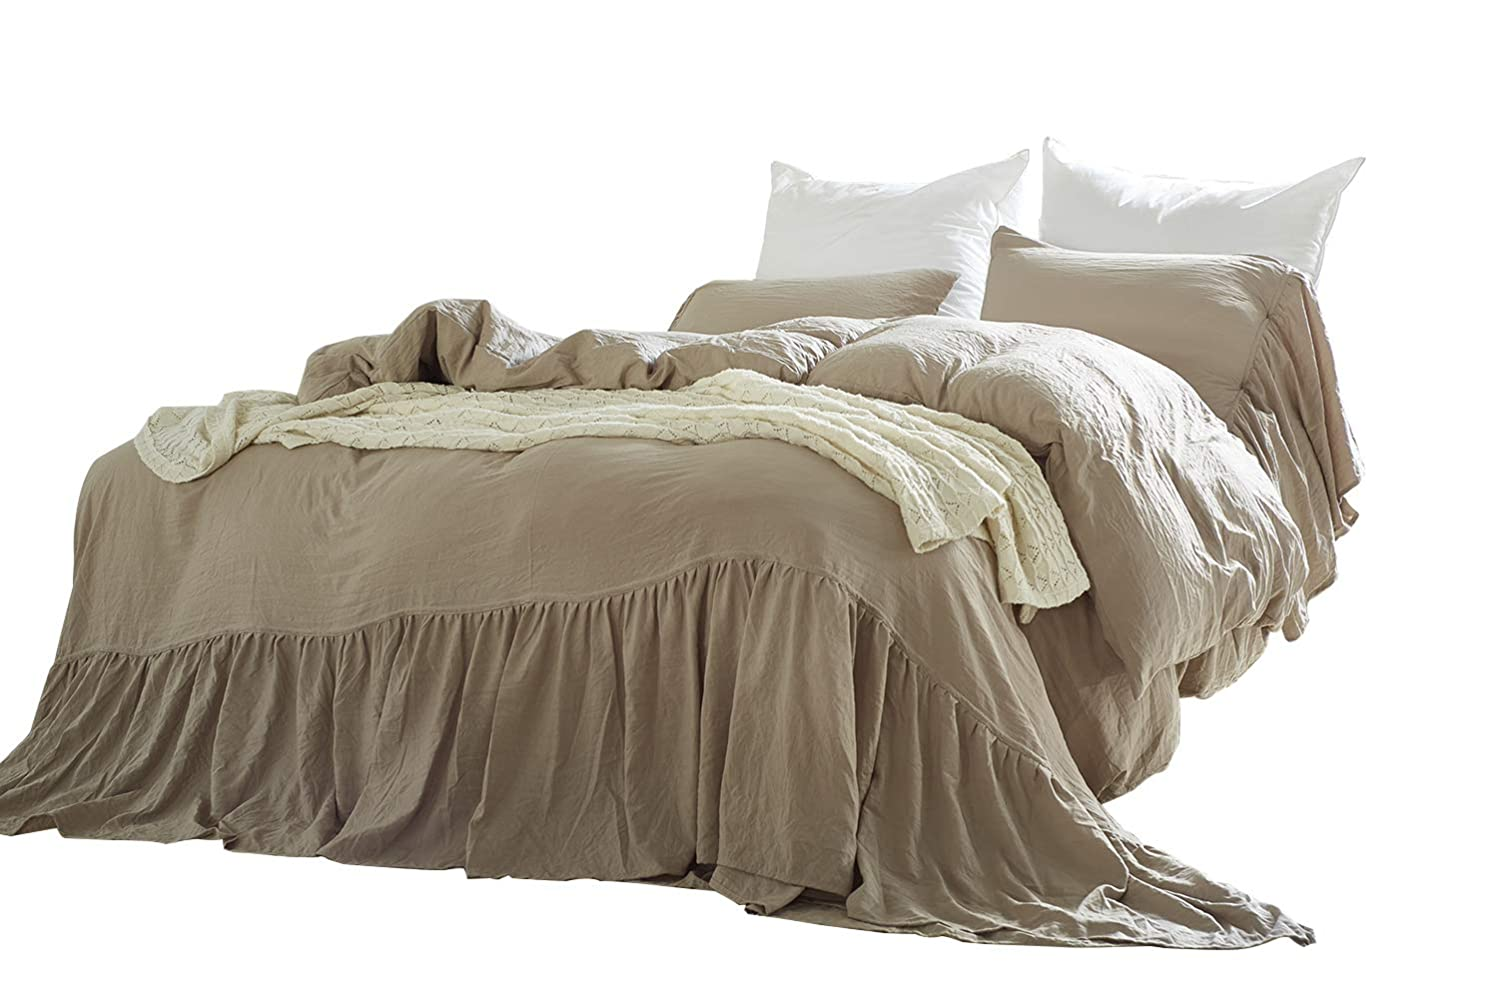 Omelas Taupe Washed Cotton Duvet Cover Set Queen Size Mermaid Tail Fringe Ruffle Comforter Cover Solid Color Vintage Bedding Farmhouse Romantic, 1 Duvet Cover + 2 Pillow Shams (3pcs, Queen/Full)